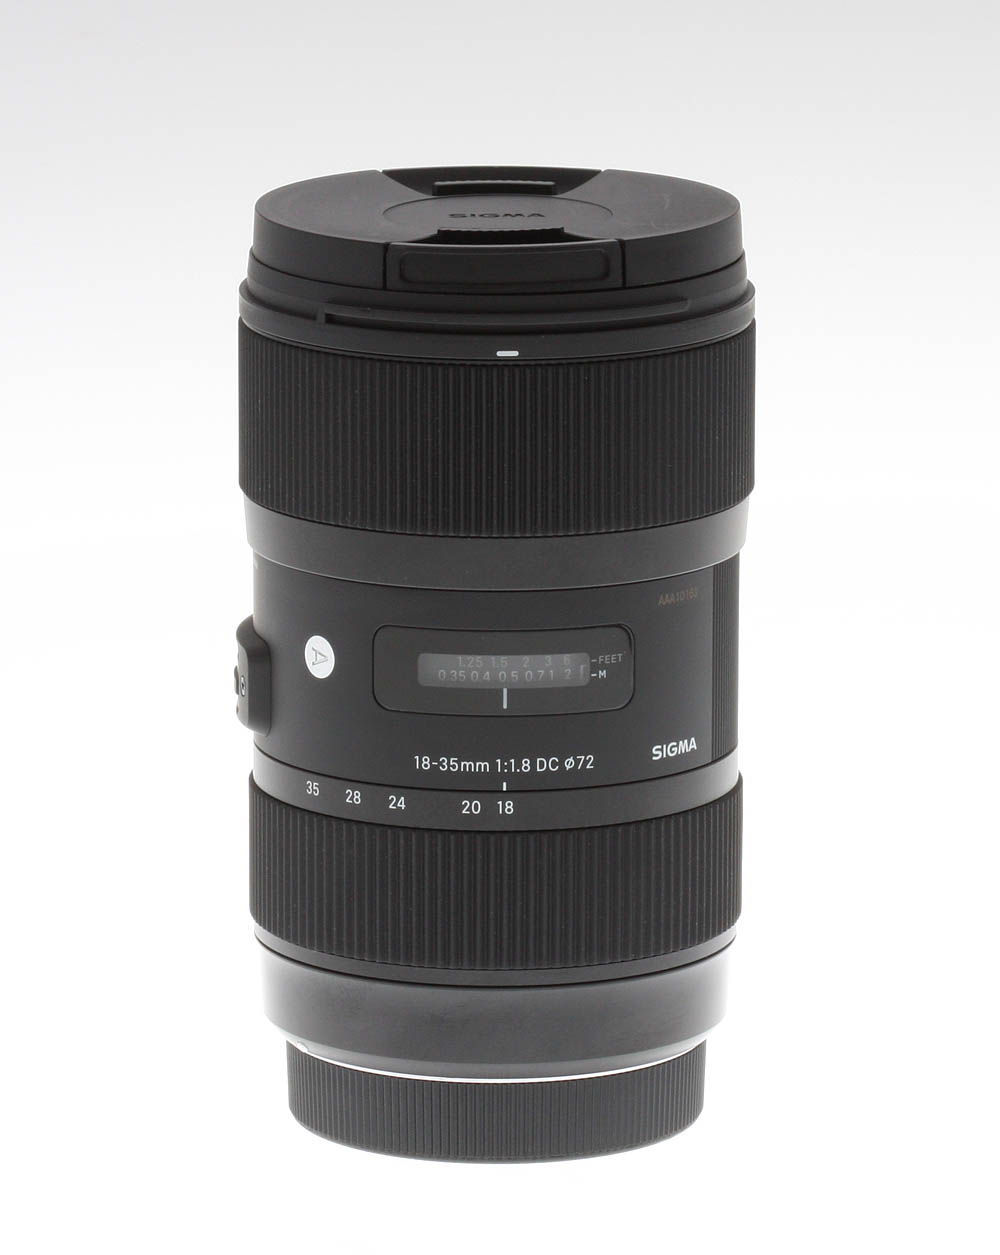 sigma 18 35mm f 1.8 firmware